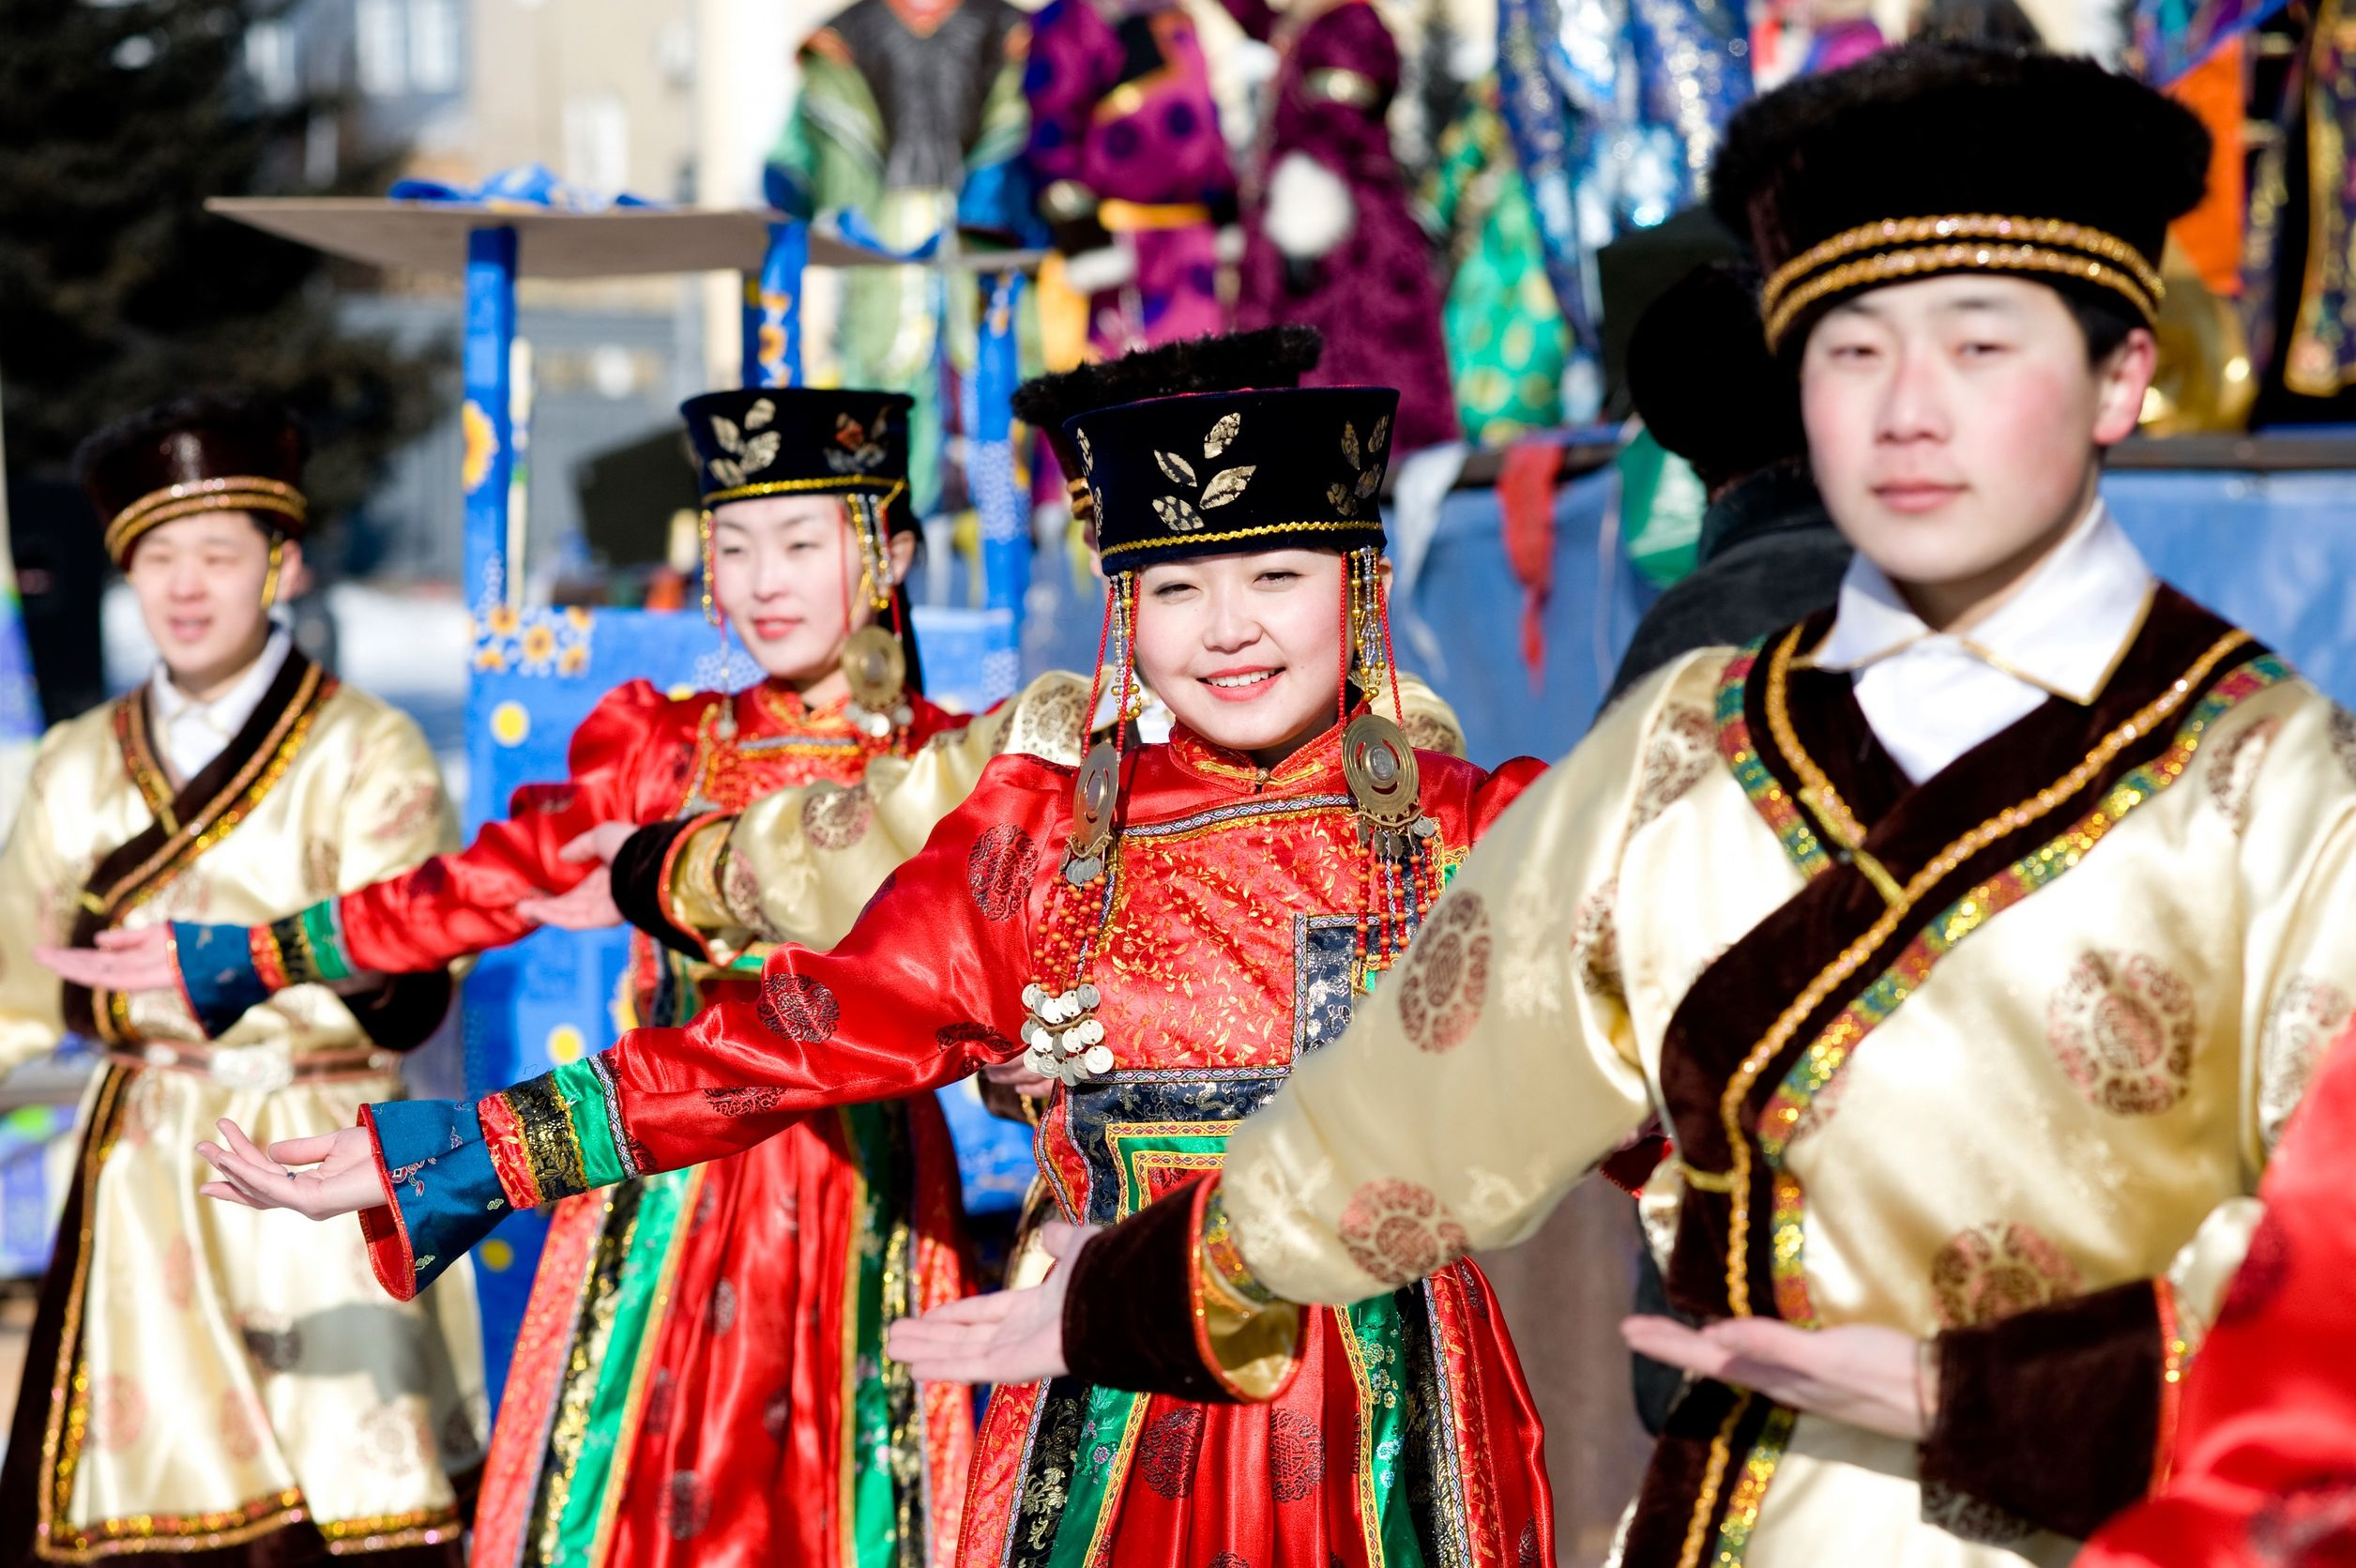 Pancake festival in moscow russia world festival directory